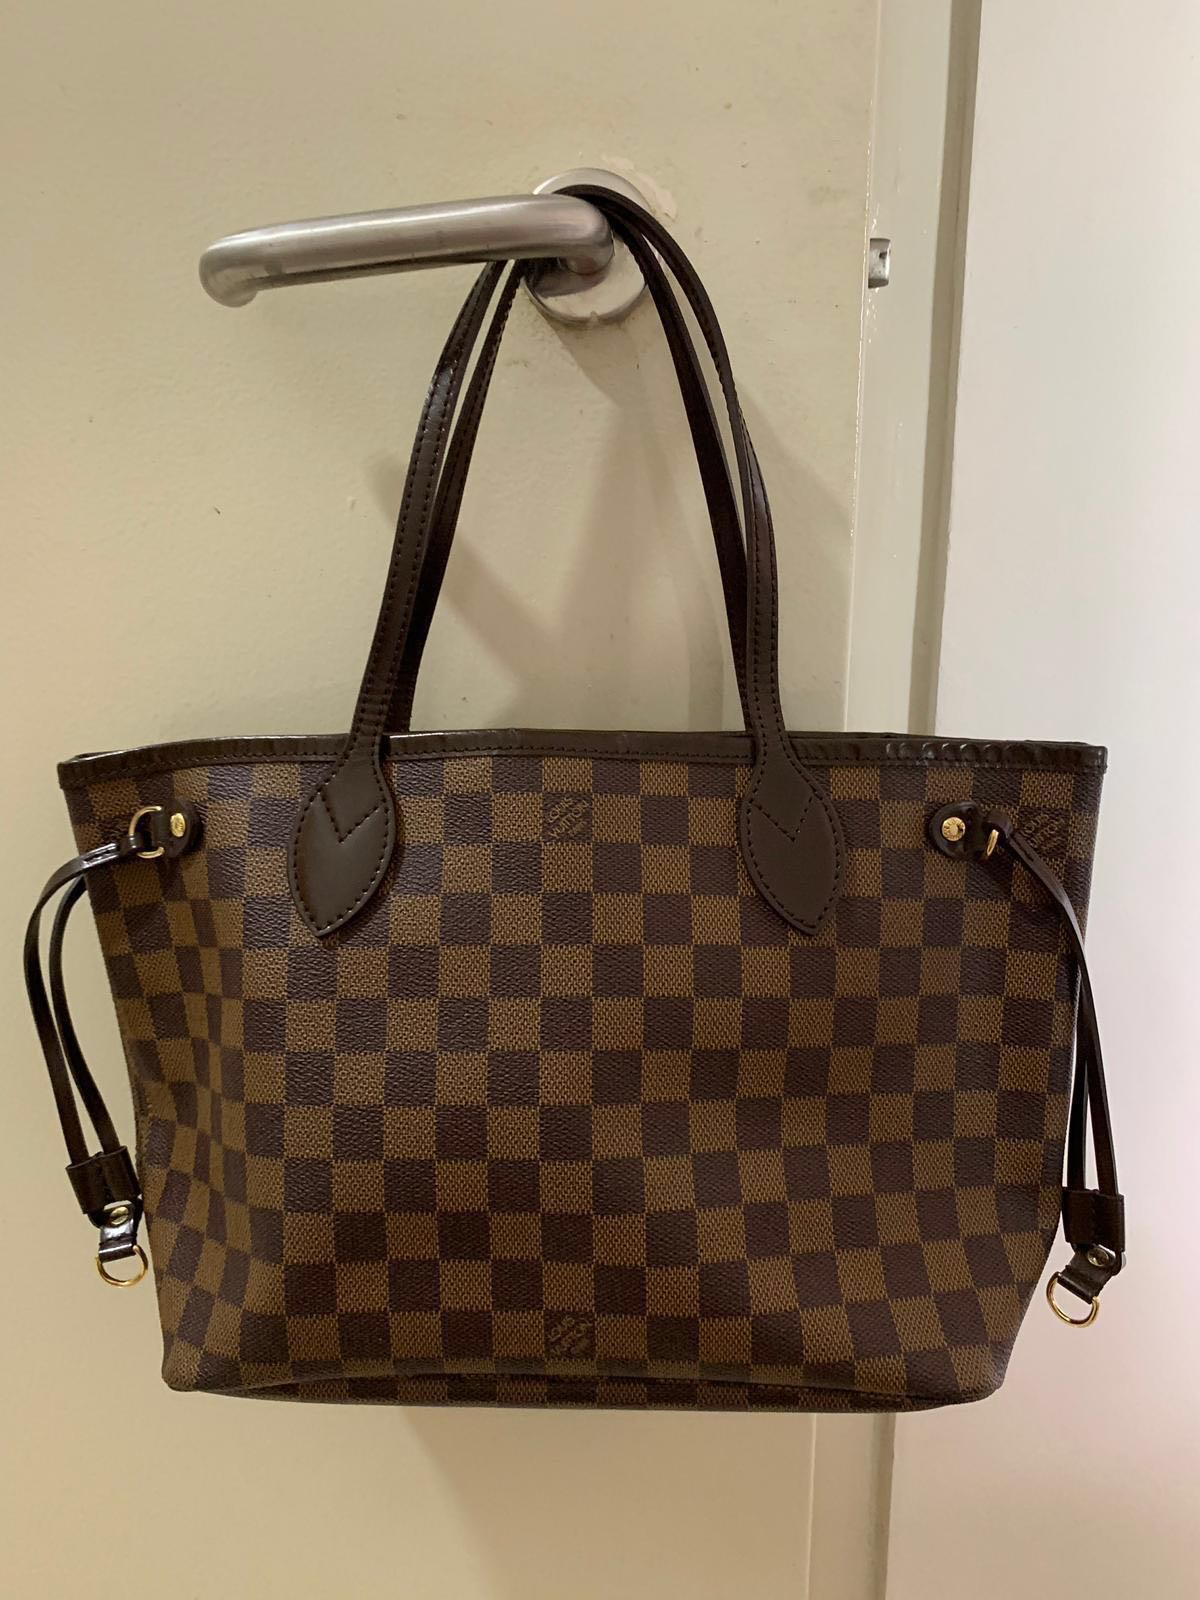 879b56298 Authentic Louis Vuitton Neverfull PM Damier, Luxury, Bags & Wallets ...